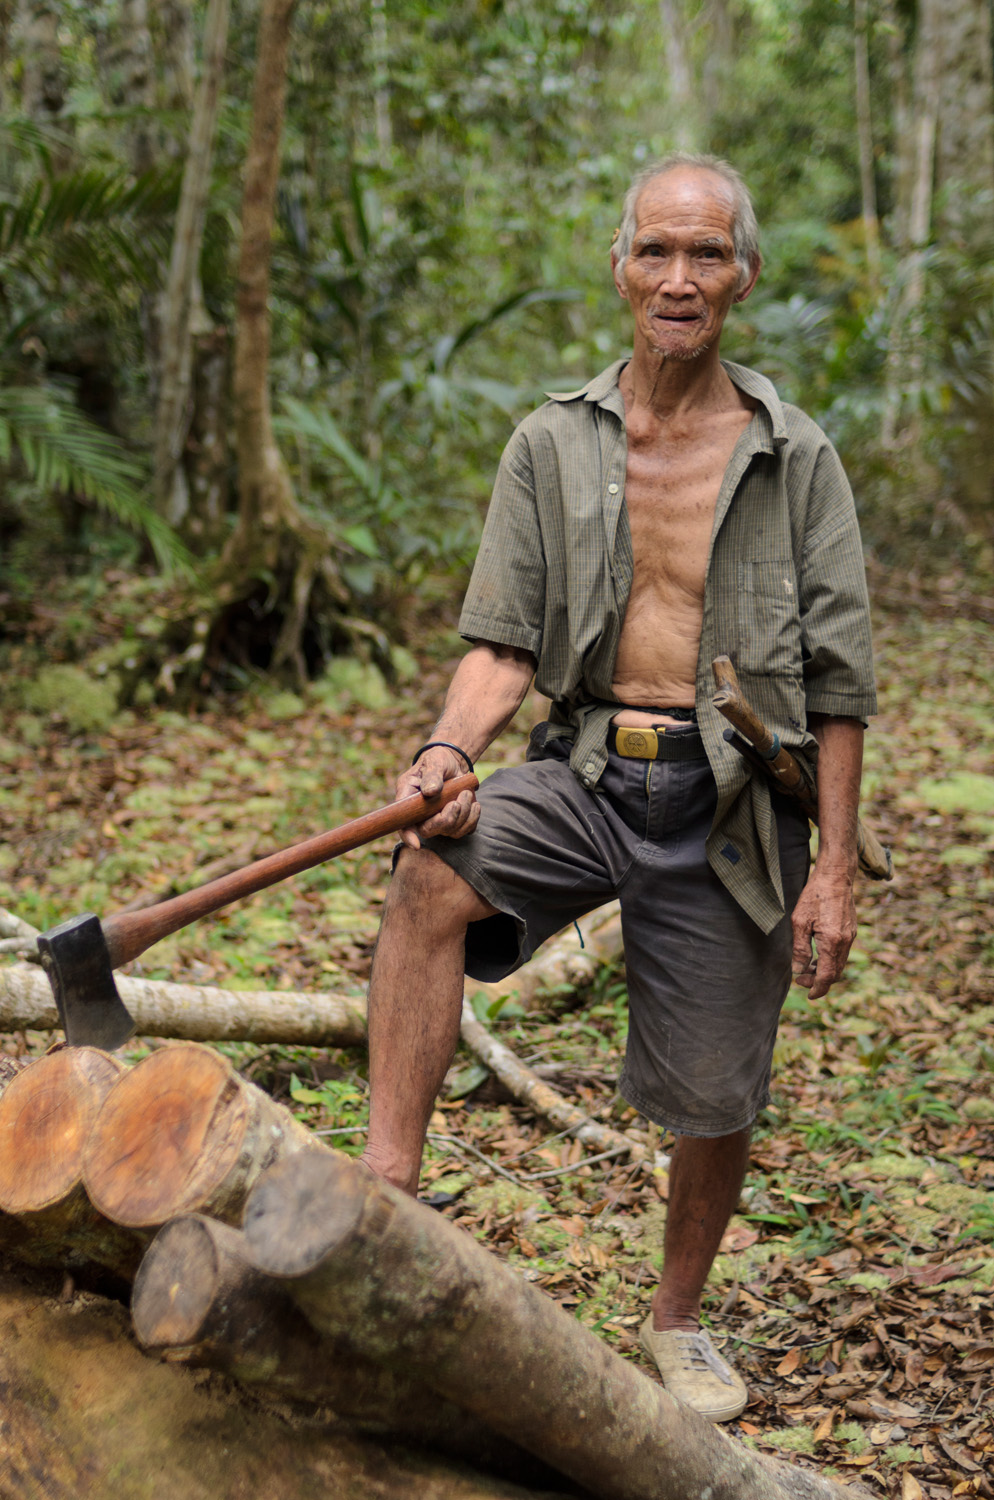 A portrait of Litah Ayo, an elderly Kelabit man who has carved his life out of the jungles around Pa Lungan, Sarawak, Malaysia.